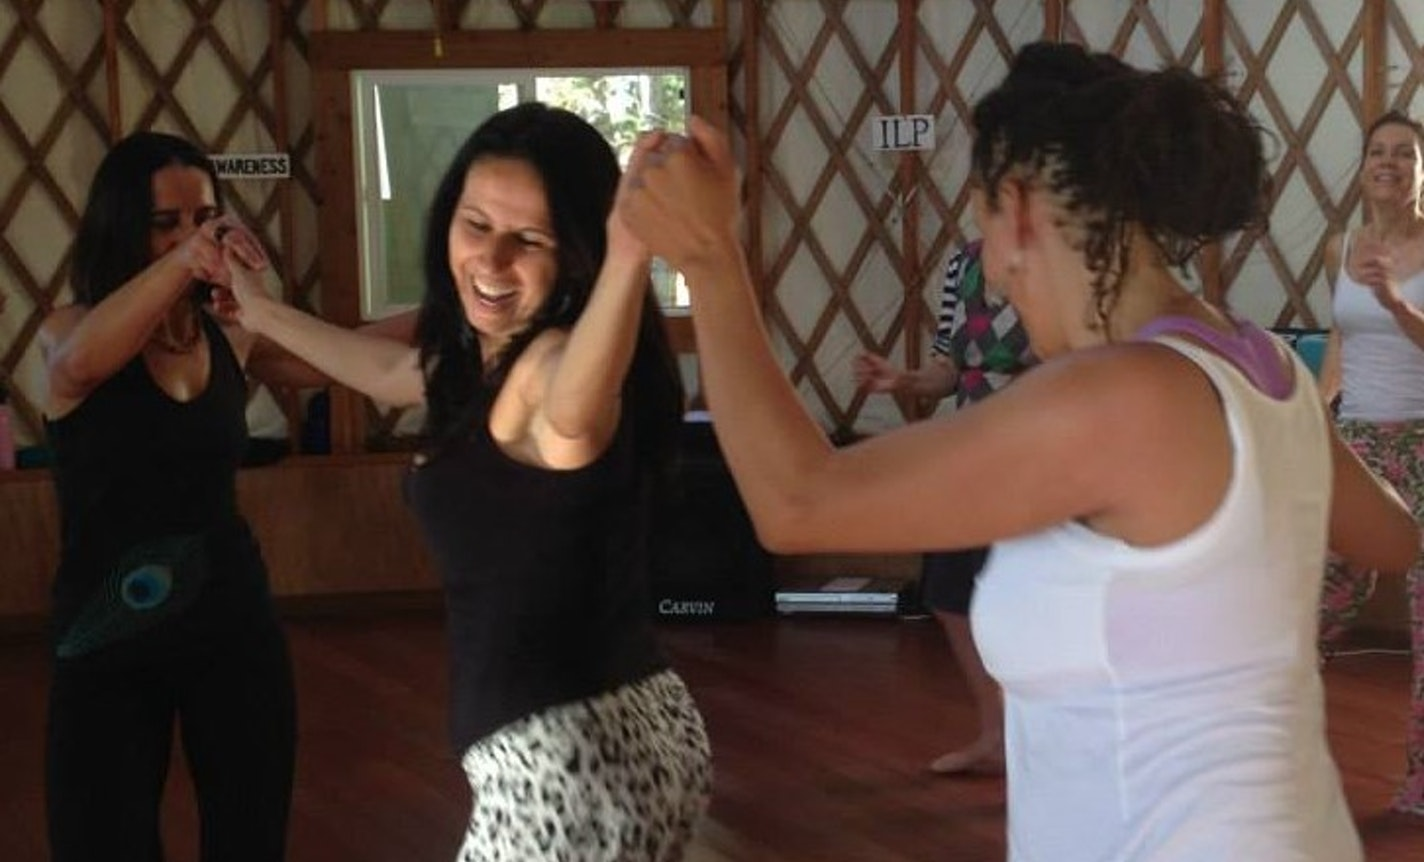 Generate Love and Compassion Through Conscious Dance